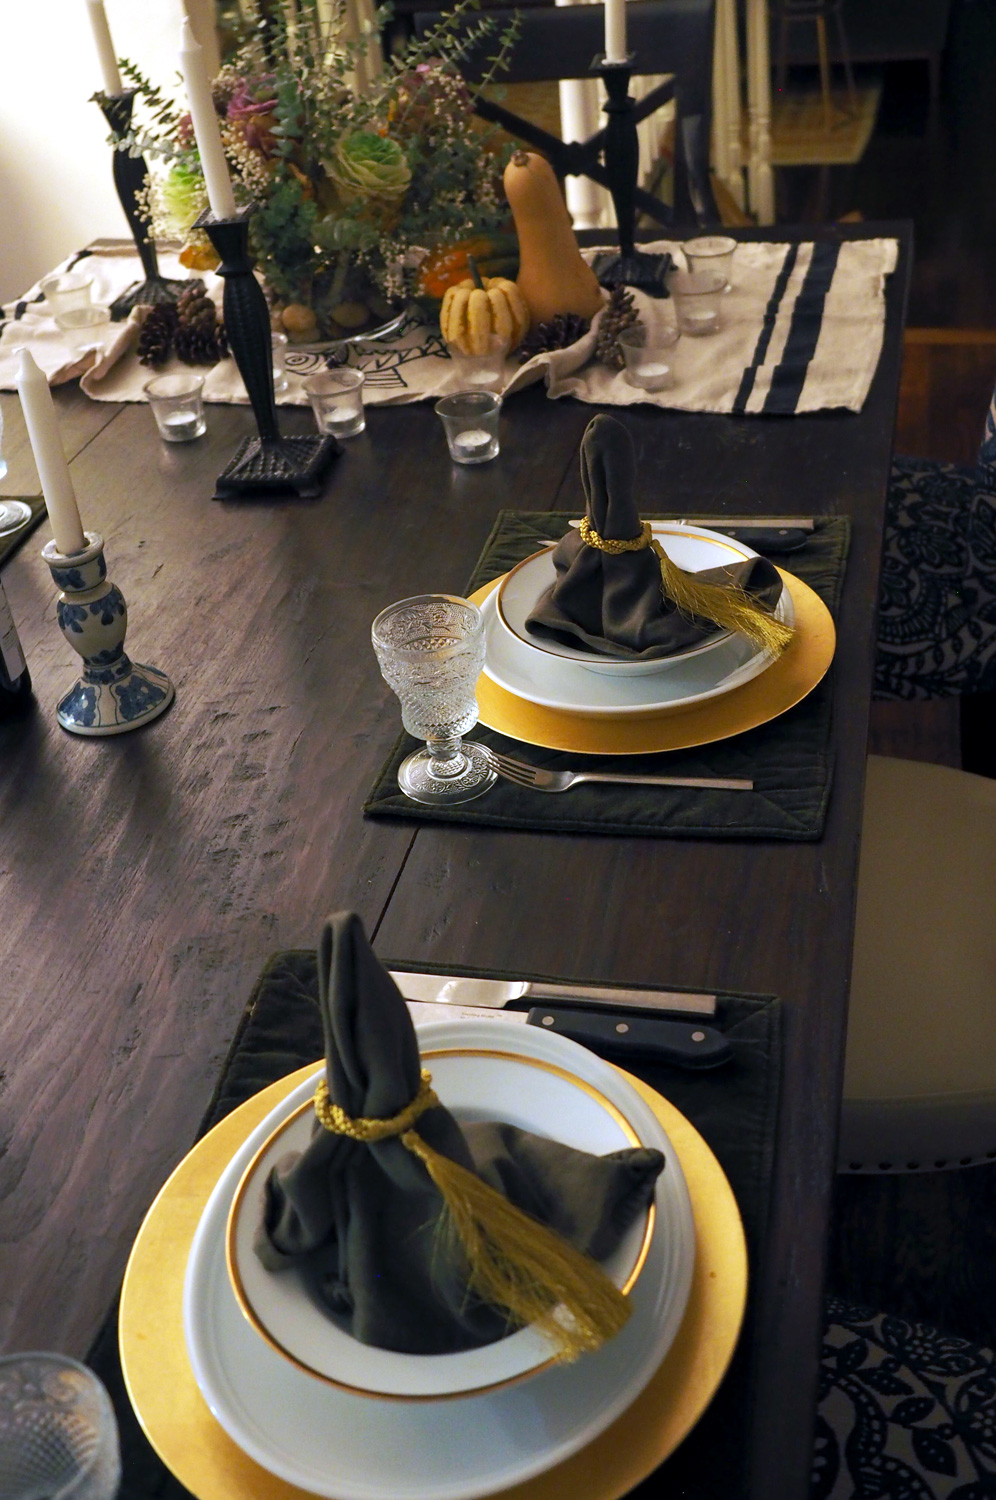 Table setting with green velvet placemats, gold chargers, white plates and a soup bowl with gold trim.